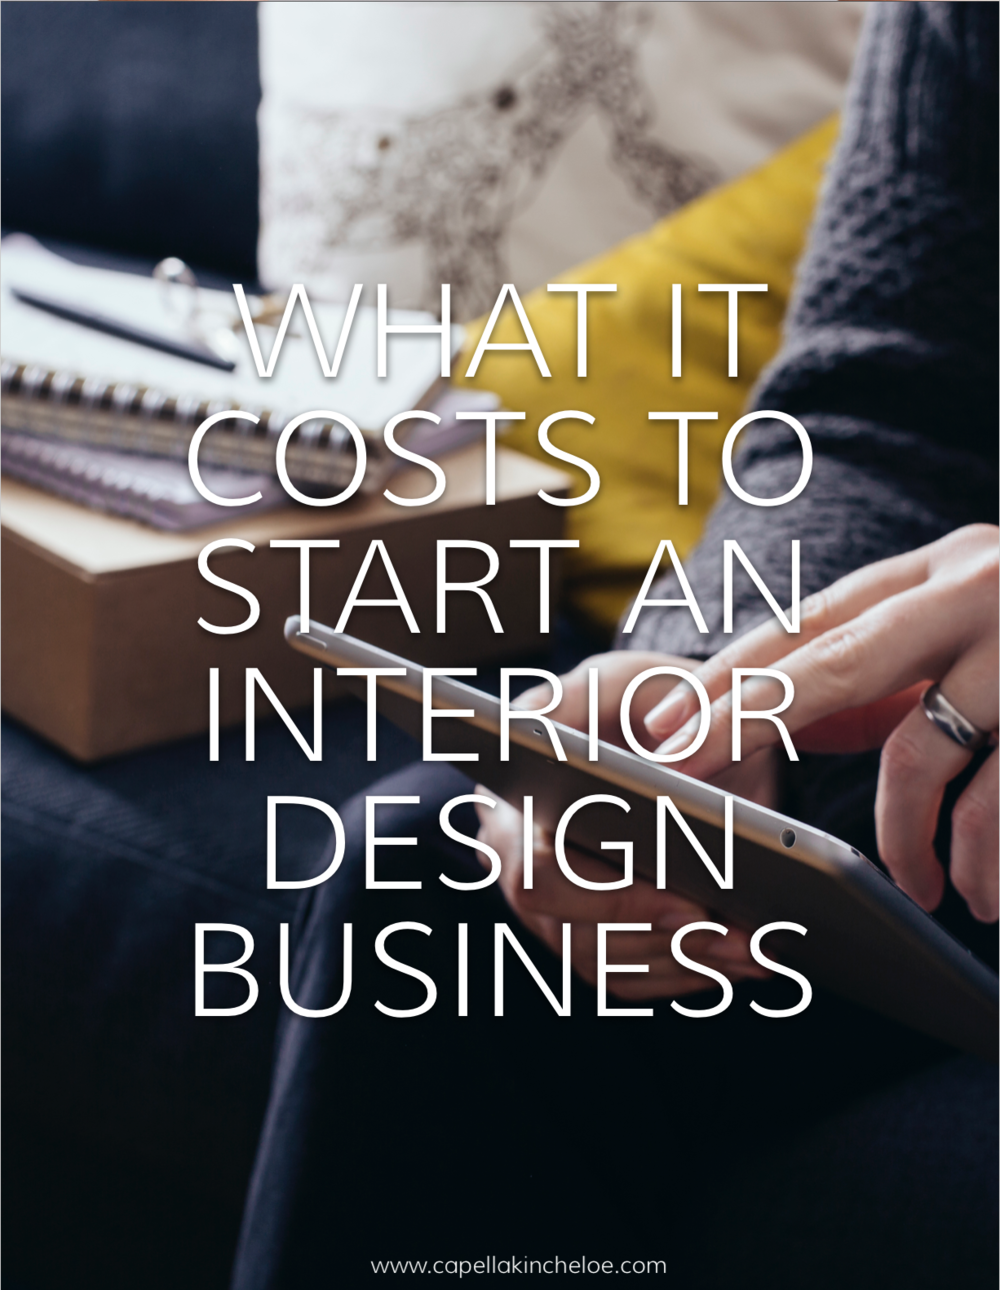 Want to know what you should be investing in to start your interior design business? & Interior Design Business Start-up Costs \u2014 Capella Kincheloe